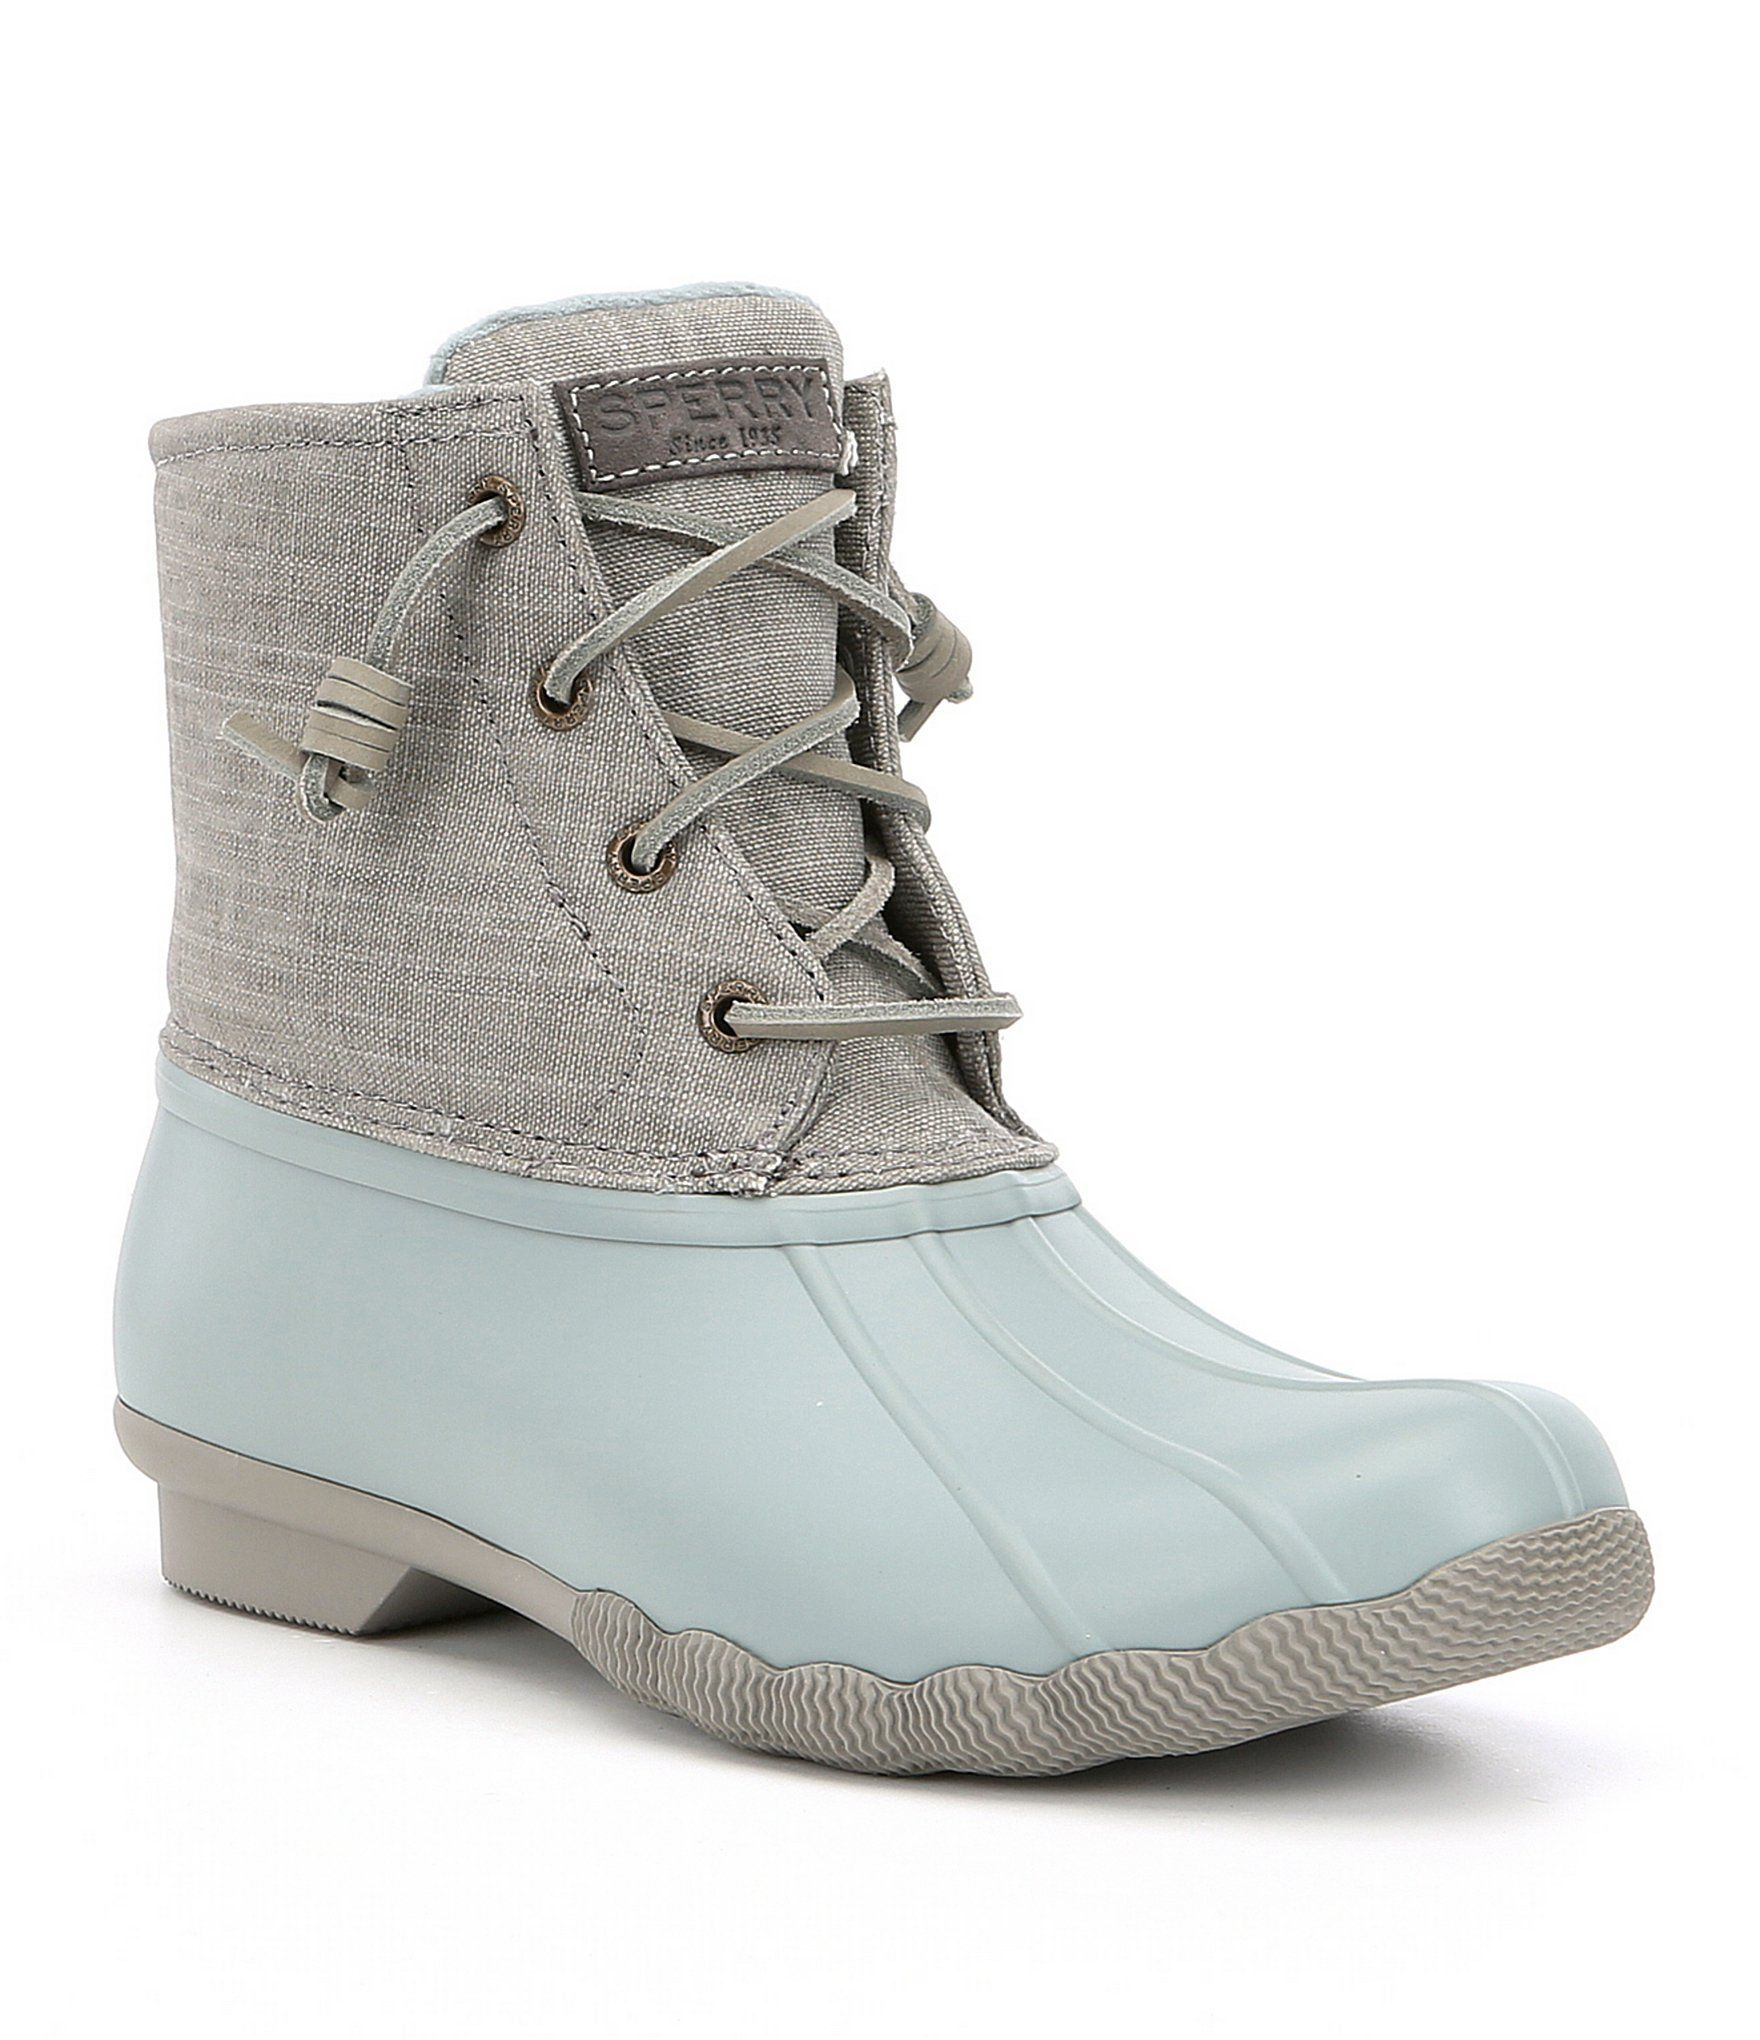 Boots, Womens rain boots, Duck boots outfit